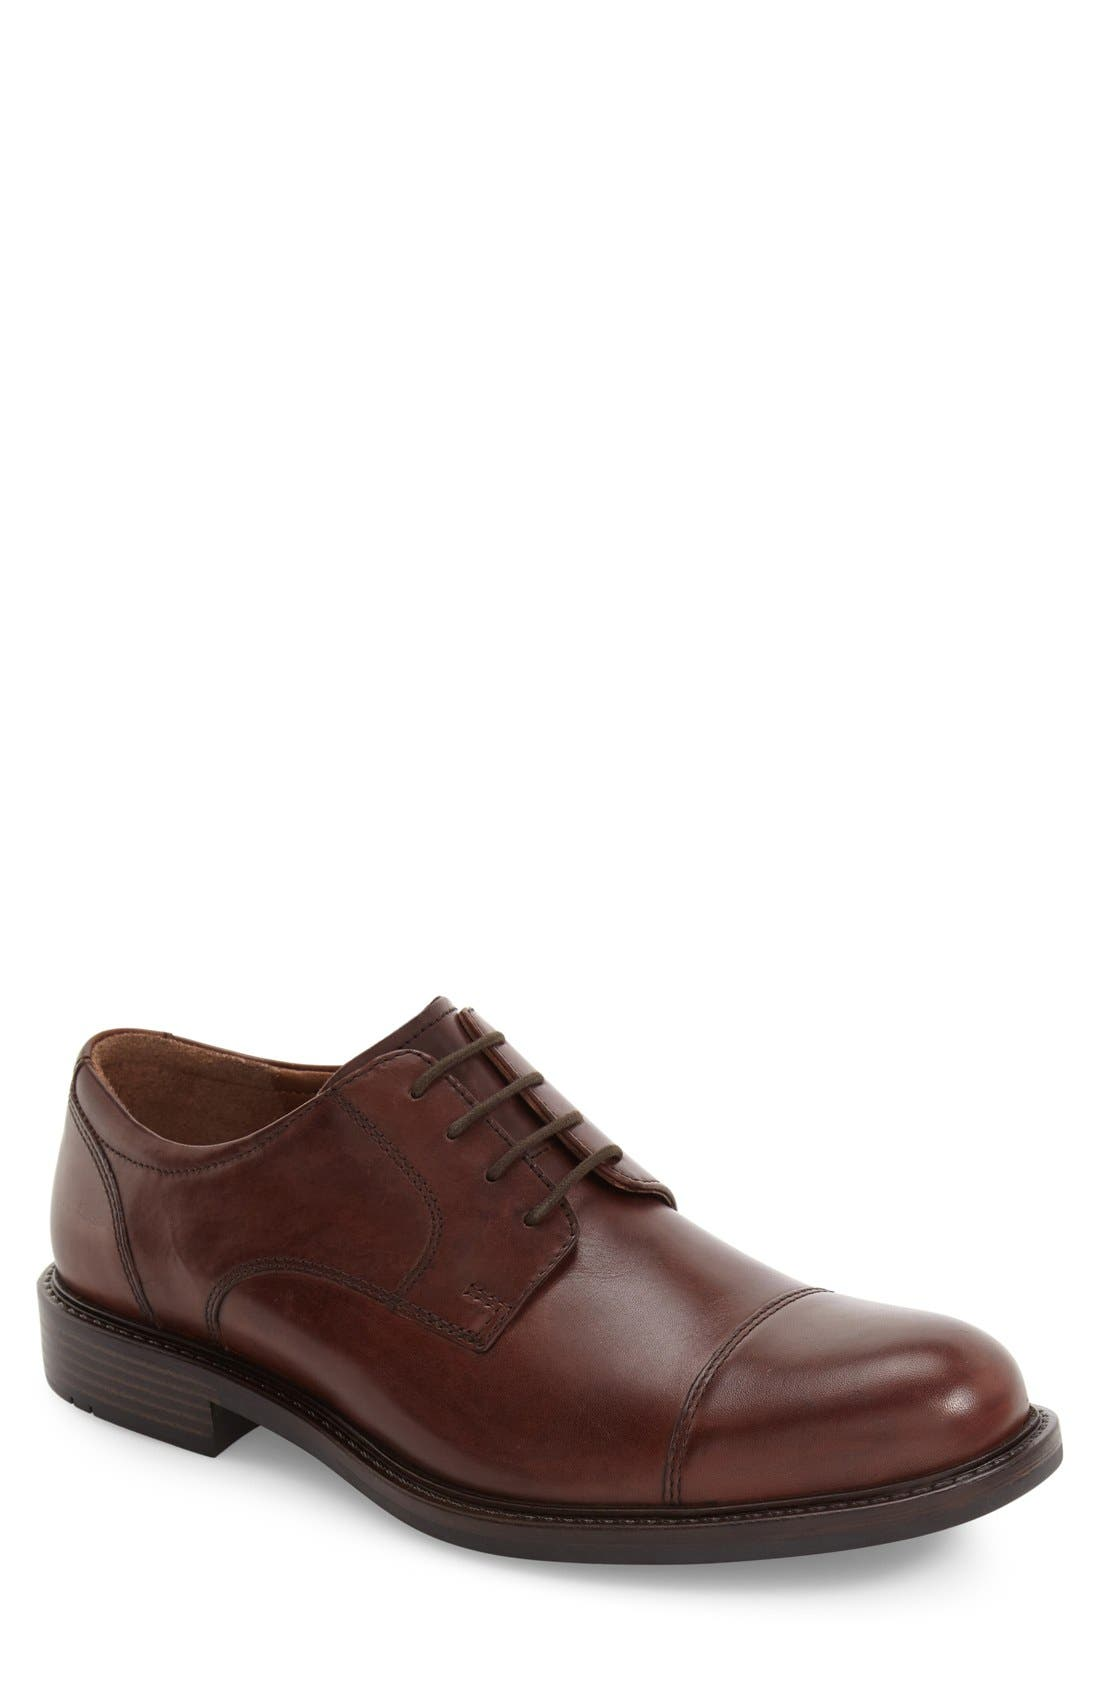 Tabor Cap Toe Derby,                             Main thumbnail 1, color,                             Brown Leather